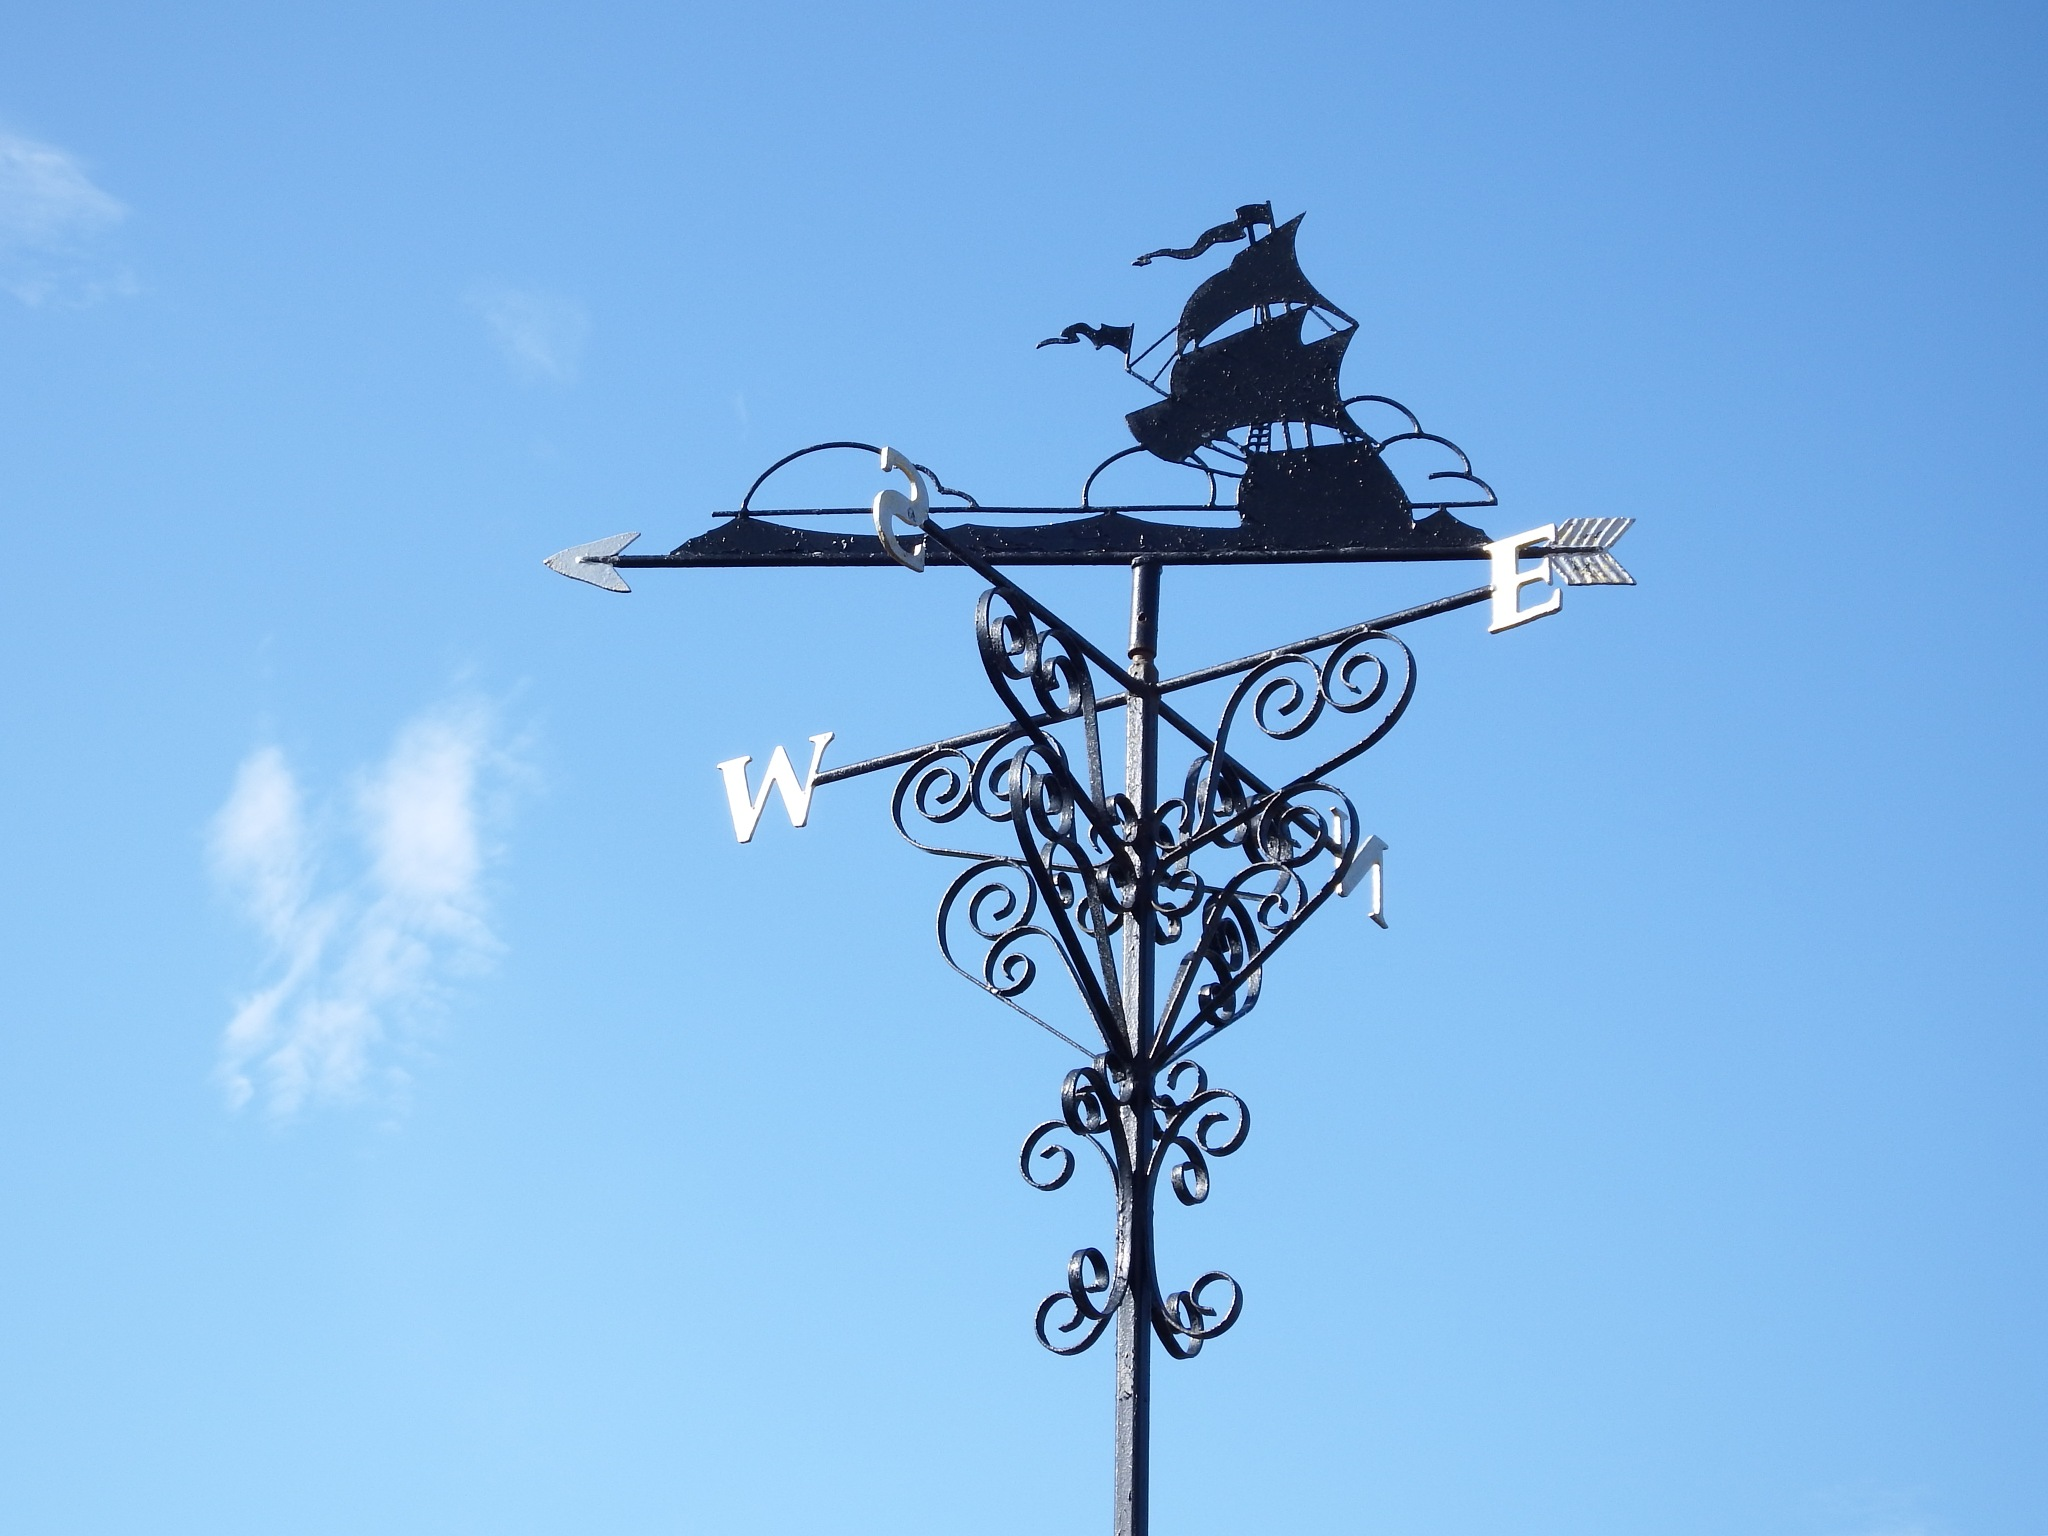 sailing ship weather vane lews castle college by kenneth campbell